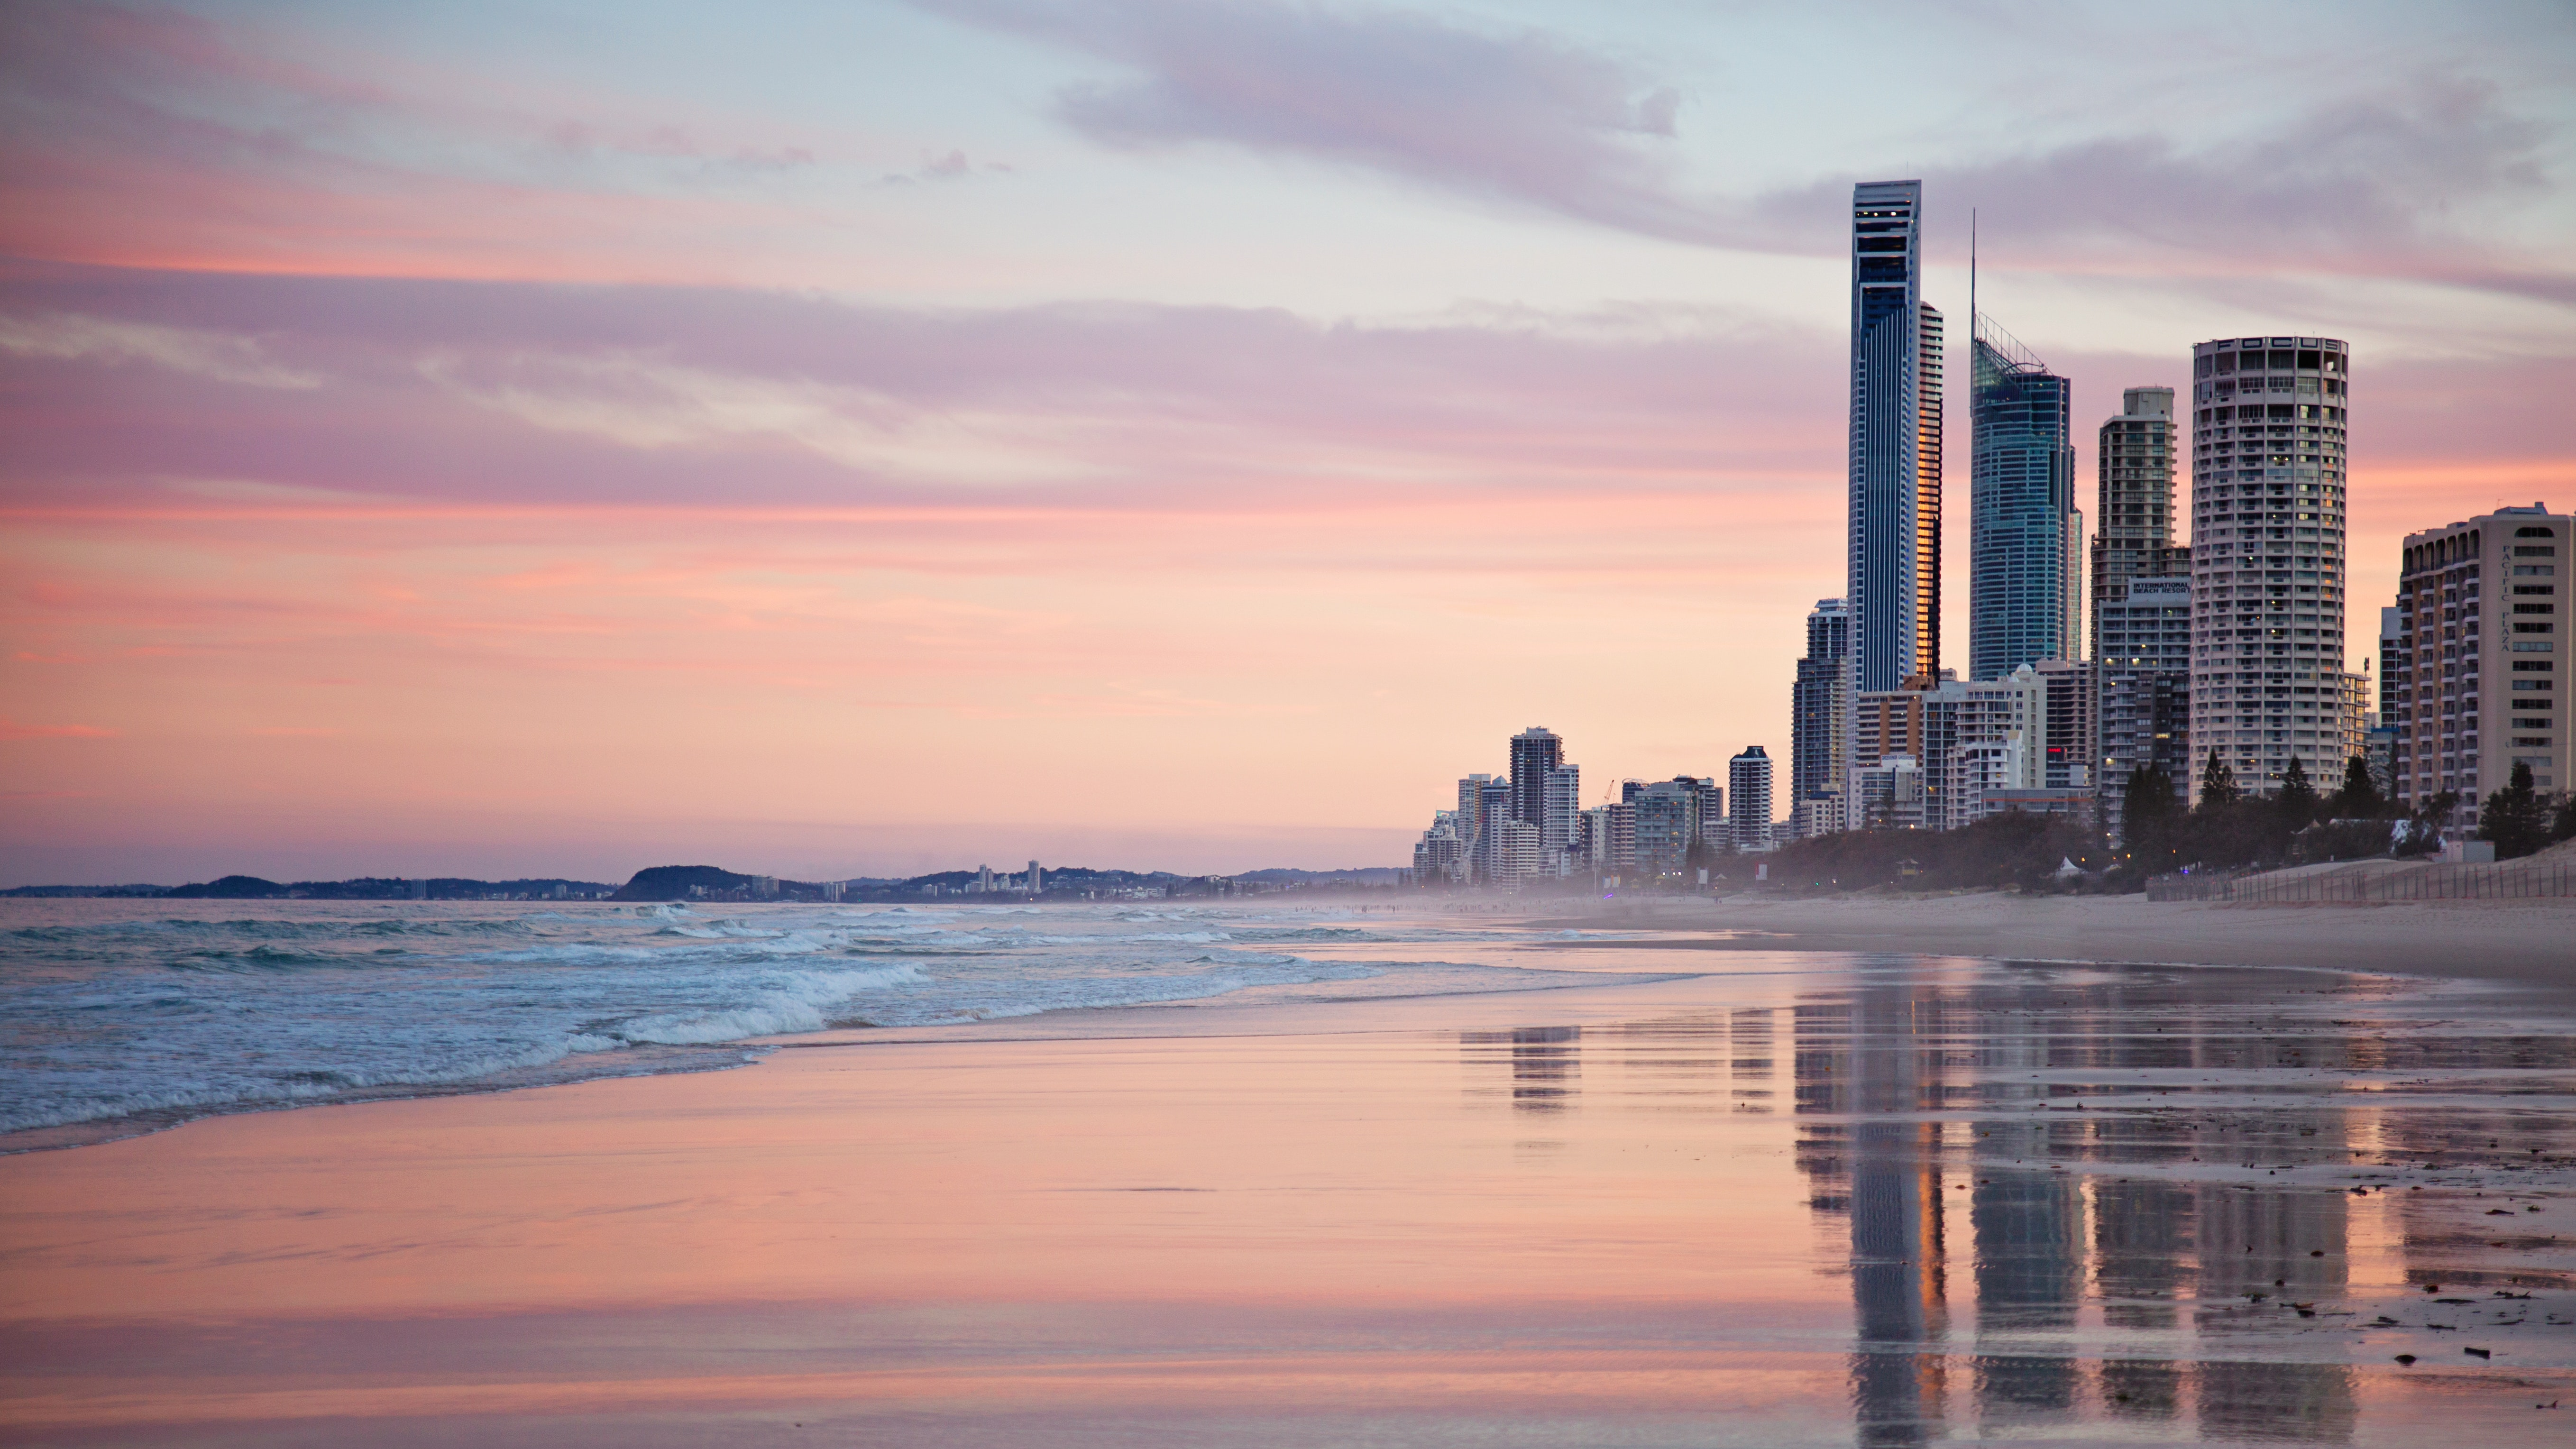 Tall city buildings near beach shore during sunset photo